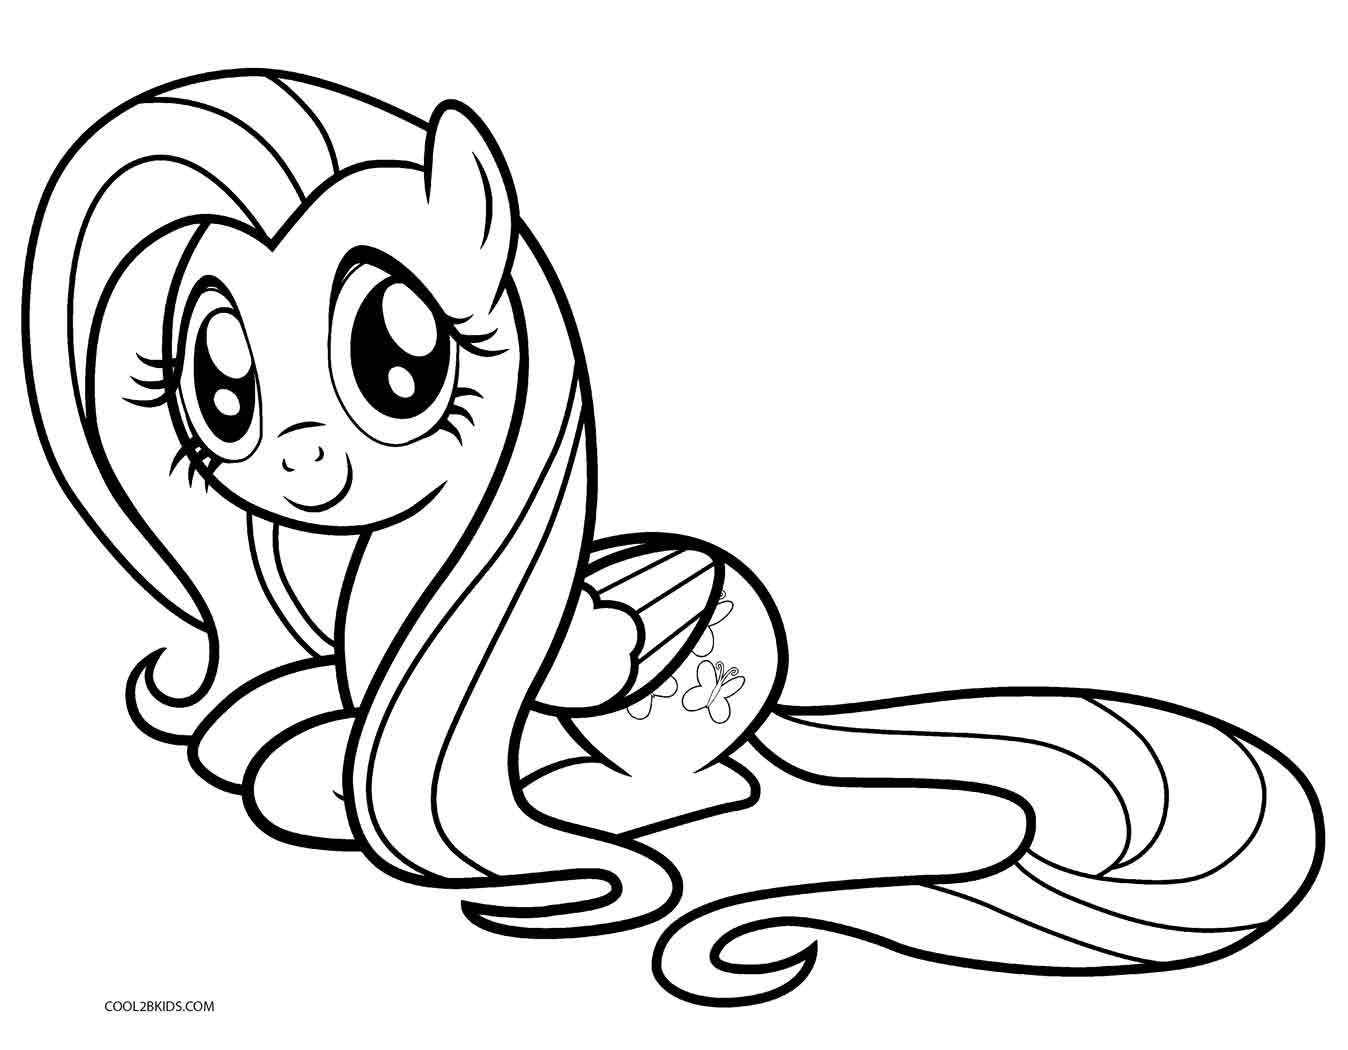 mlp printouts free printable my little pony coloring pages for kids mlp printouts 1 1